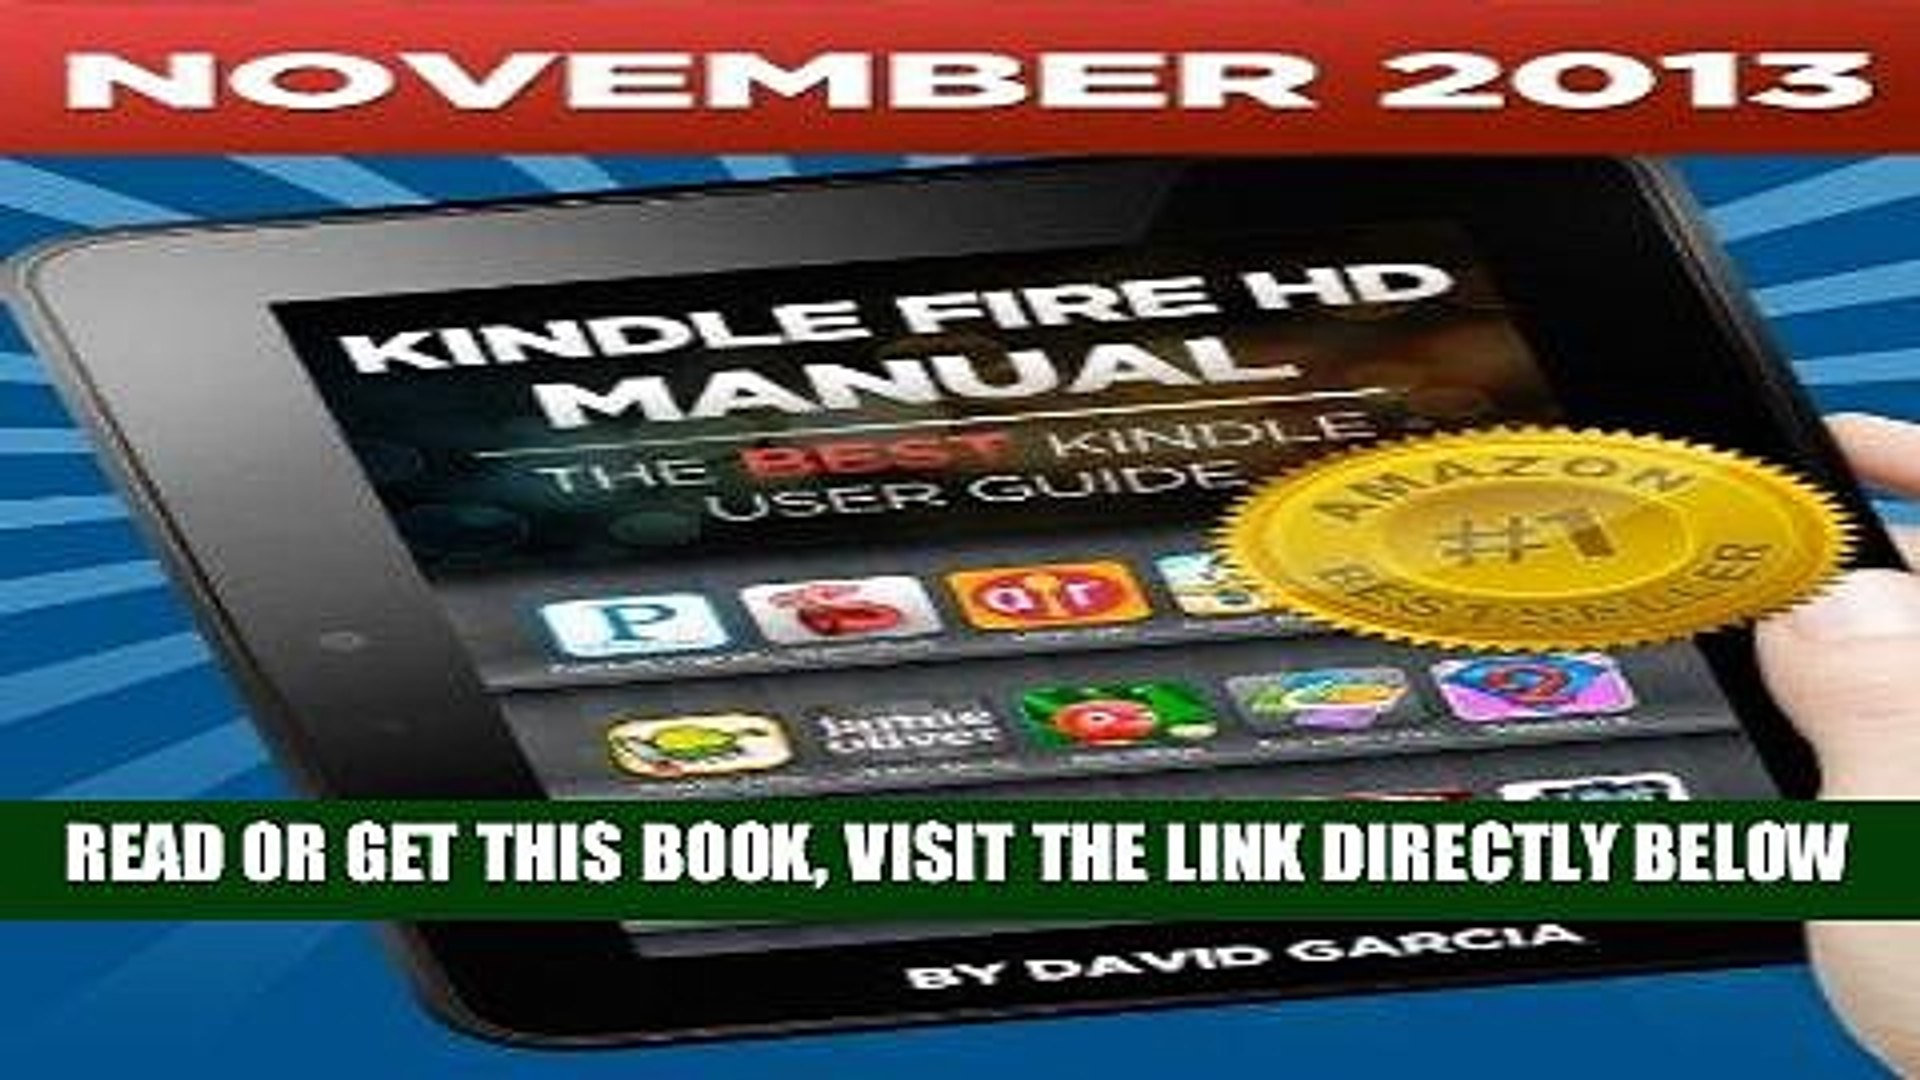 [Free Read] Kindle Fire HD Manual - Learn how to use your Amazon Tablet, Find new releases, Free